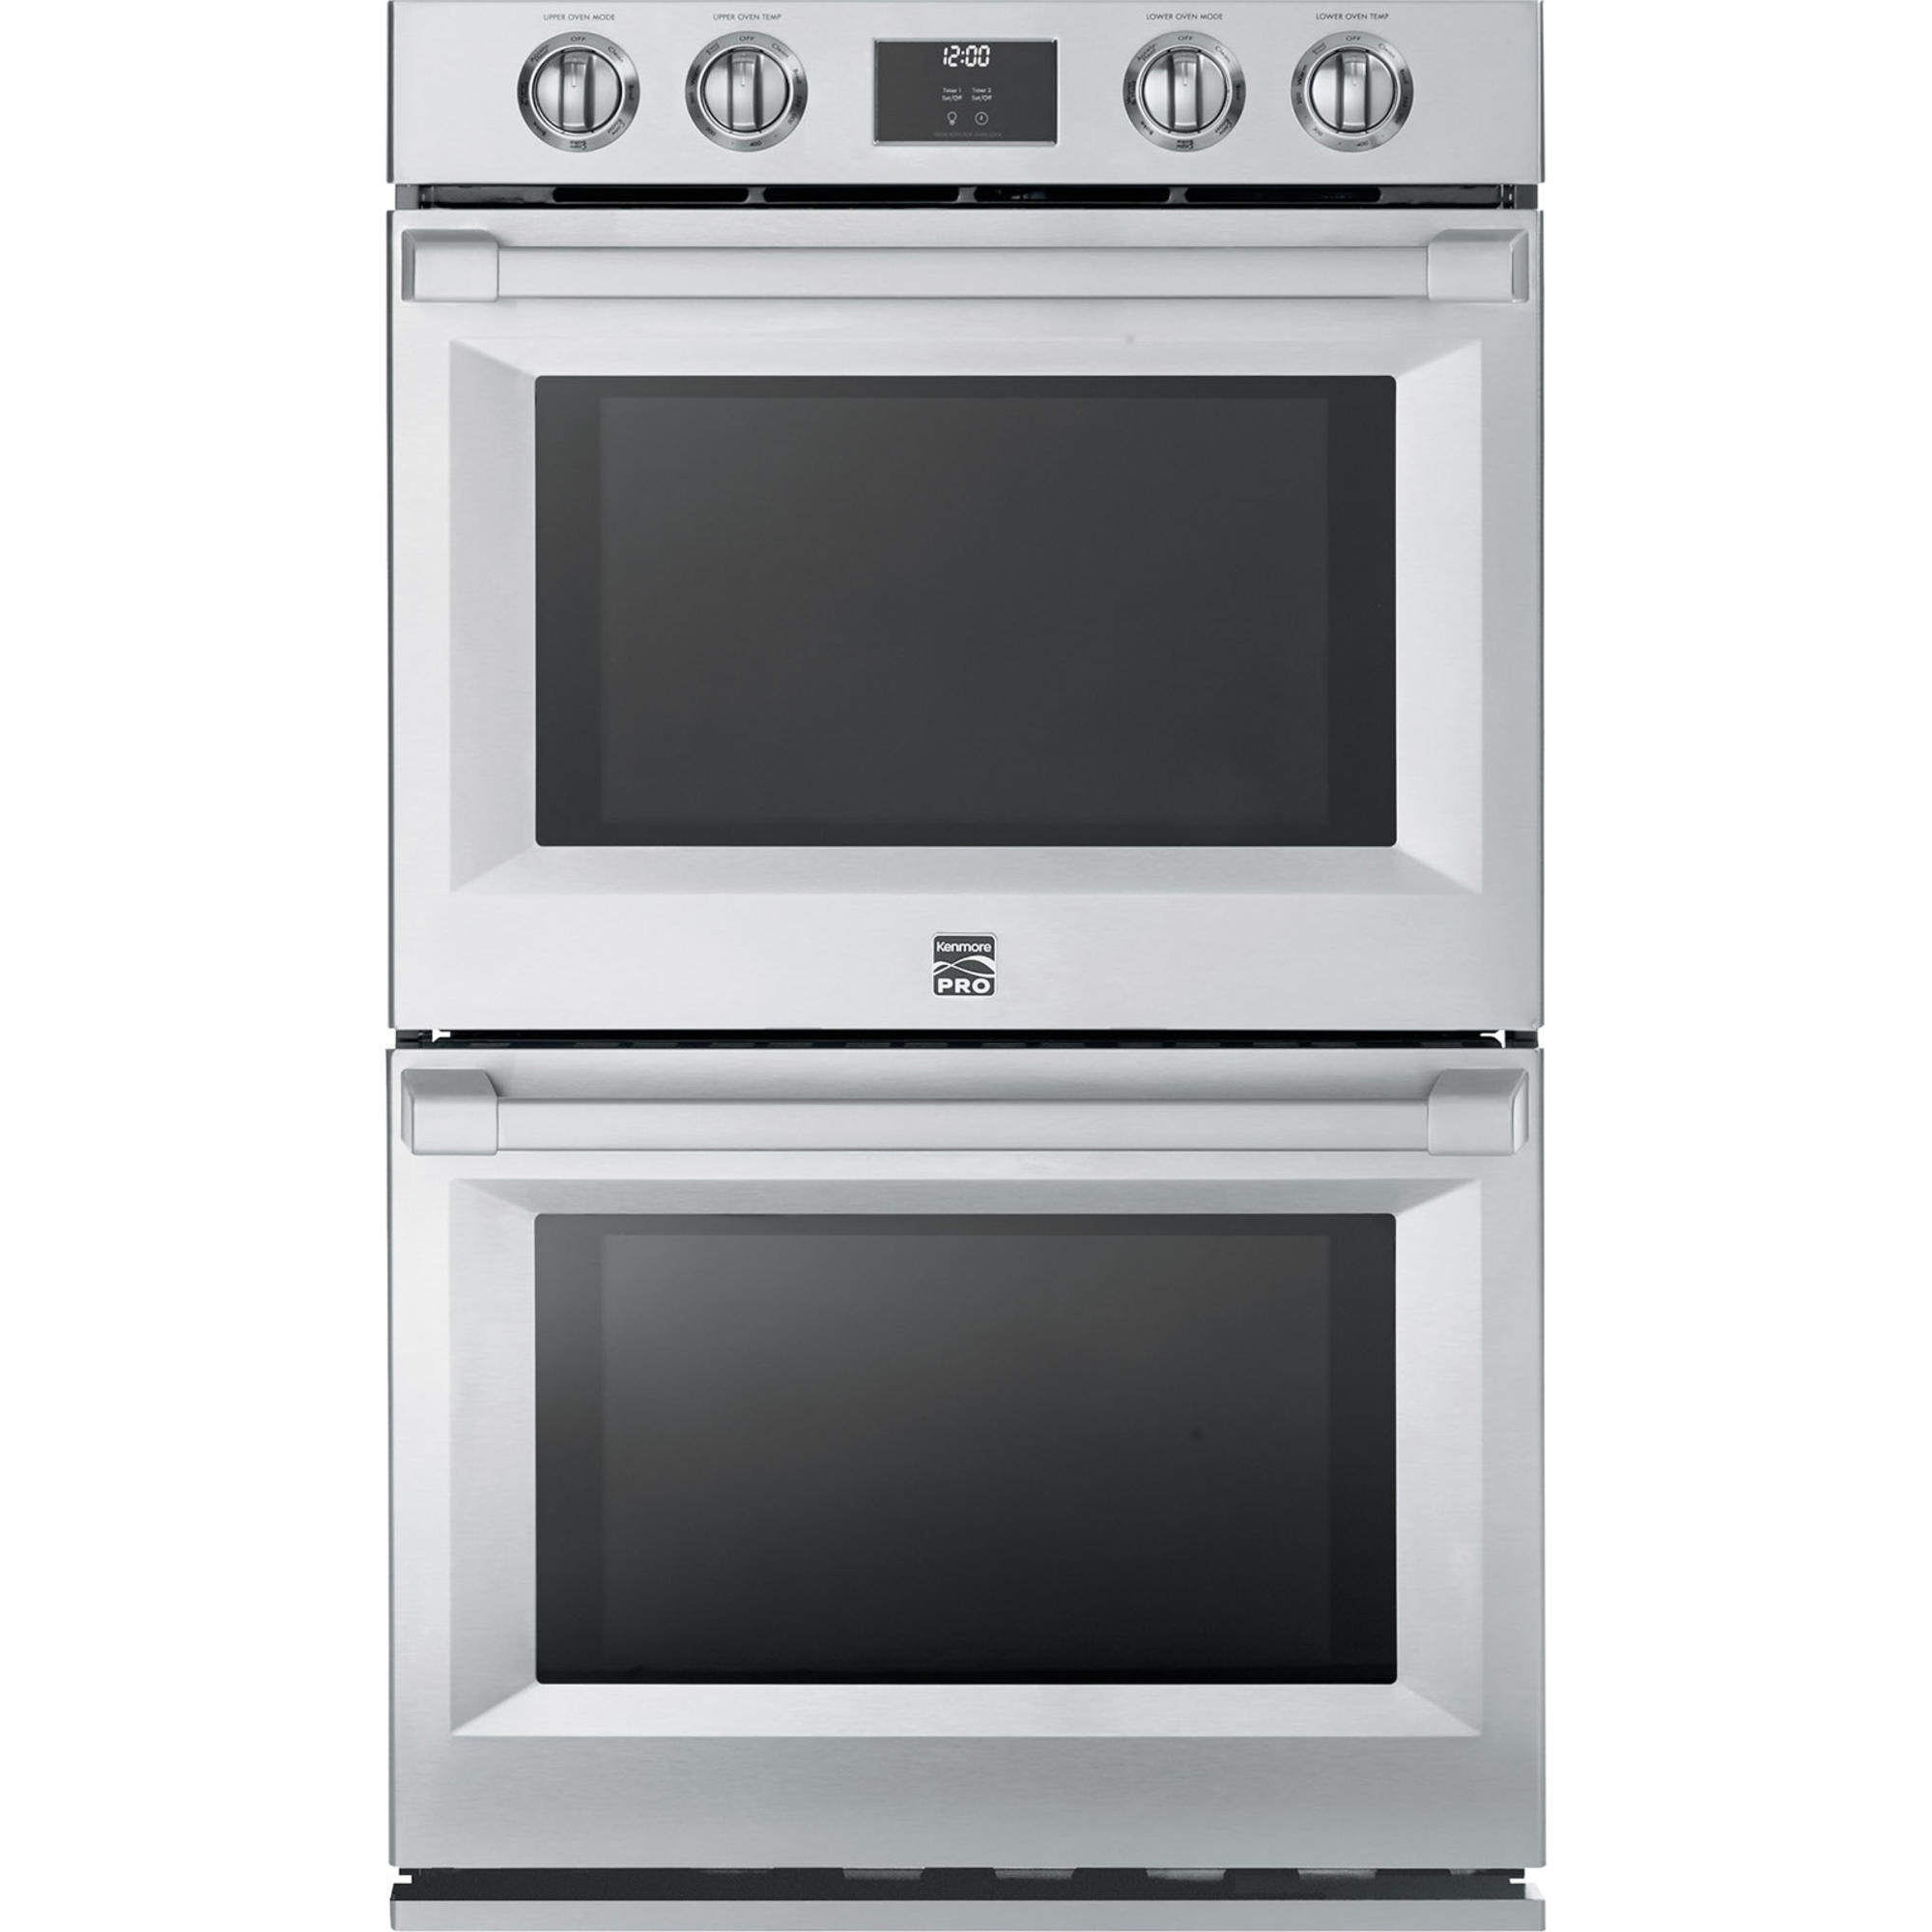 41143-30%E2%80%9D-Electric-Double-Wall-Oven-Stainless-Steel